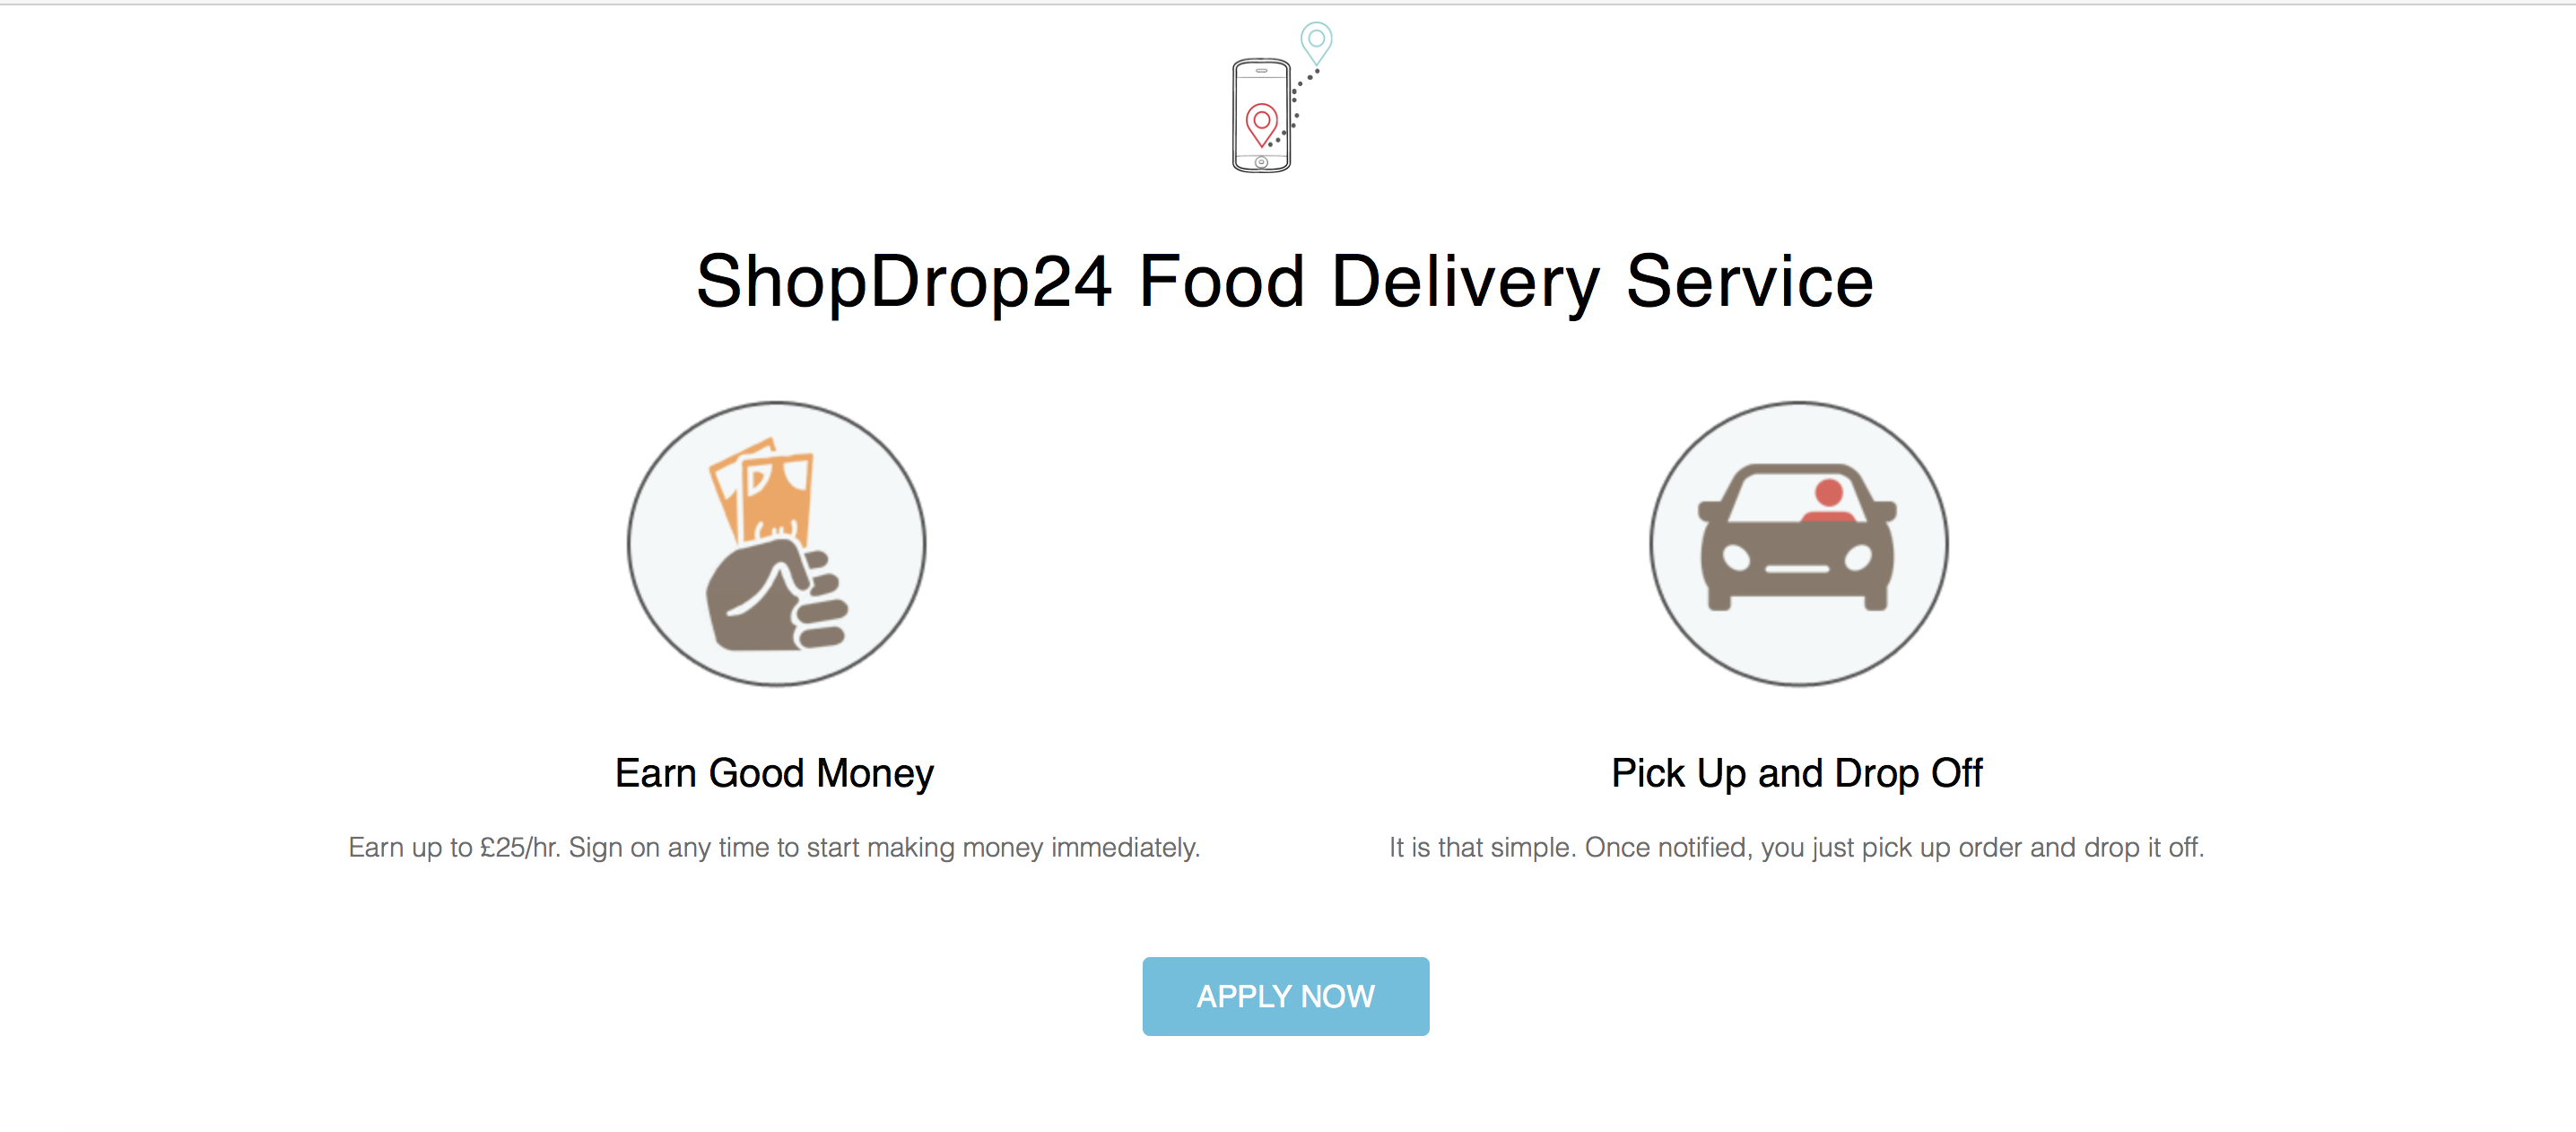 Grocery/food Delivery Rider – Earn £25ph